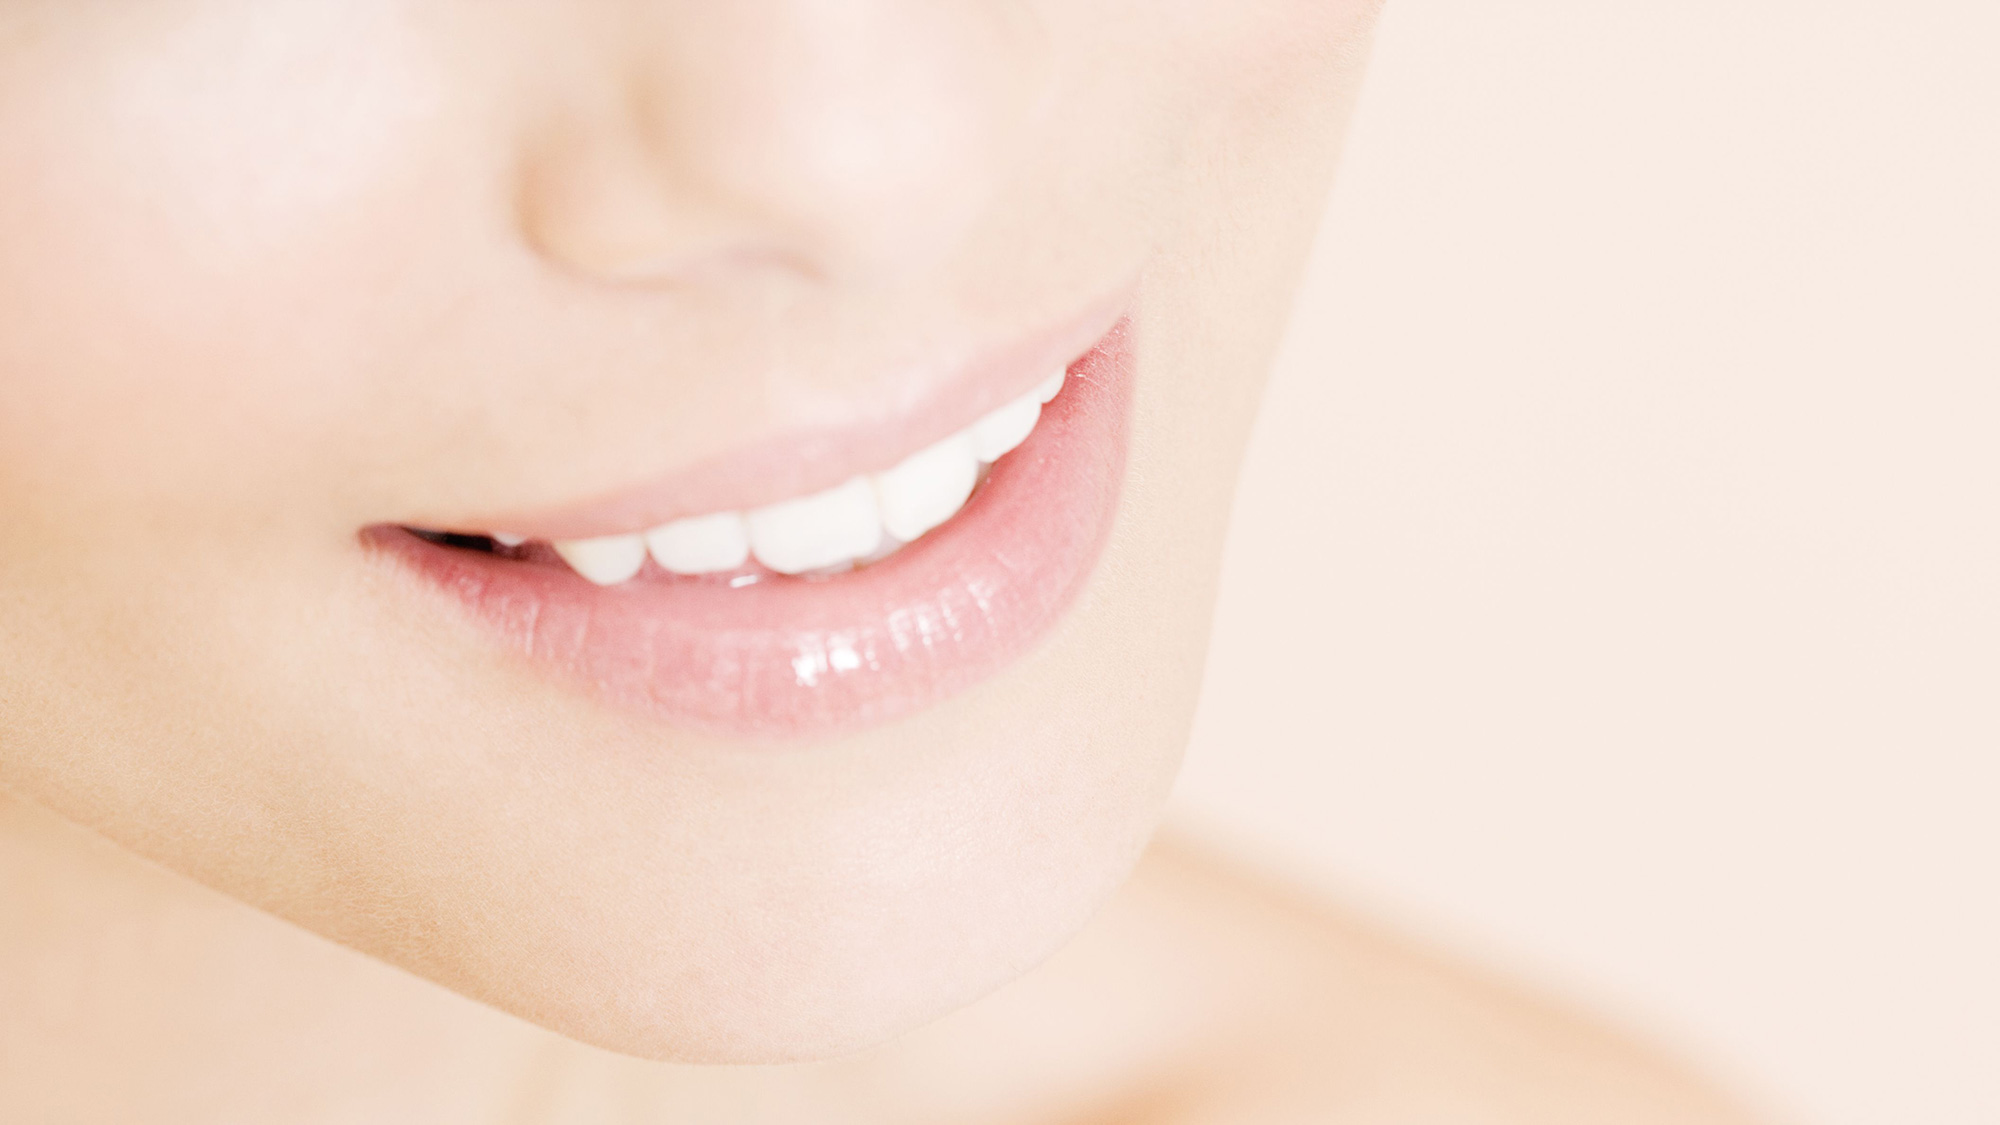 Teeth Bonding: The Fast And Cheaper Way To Get A White